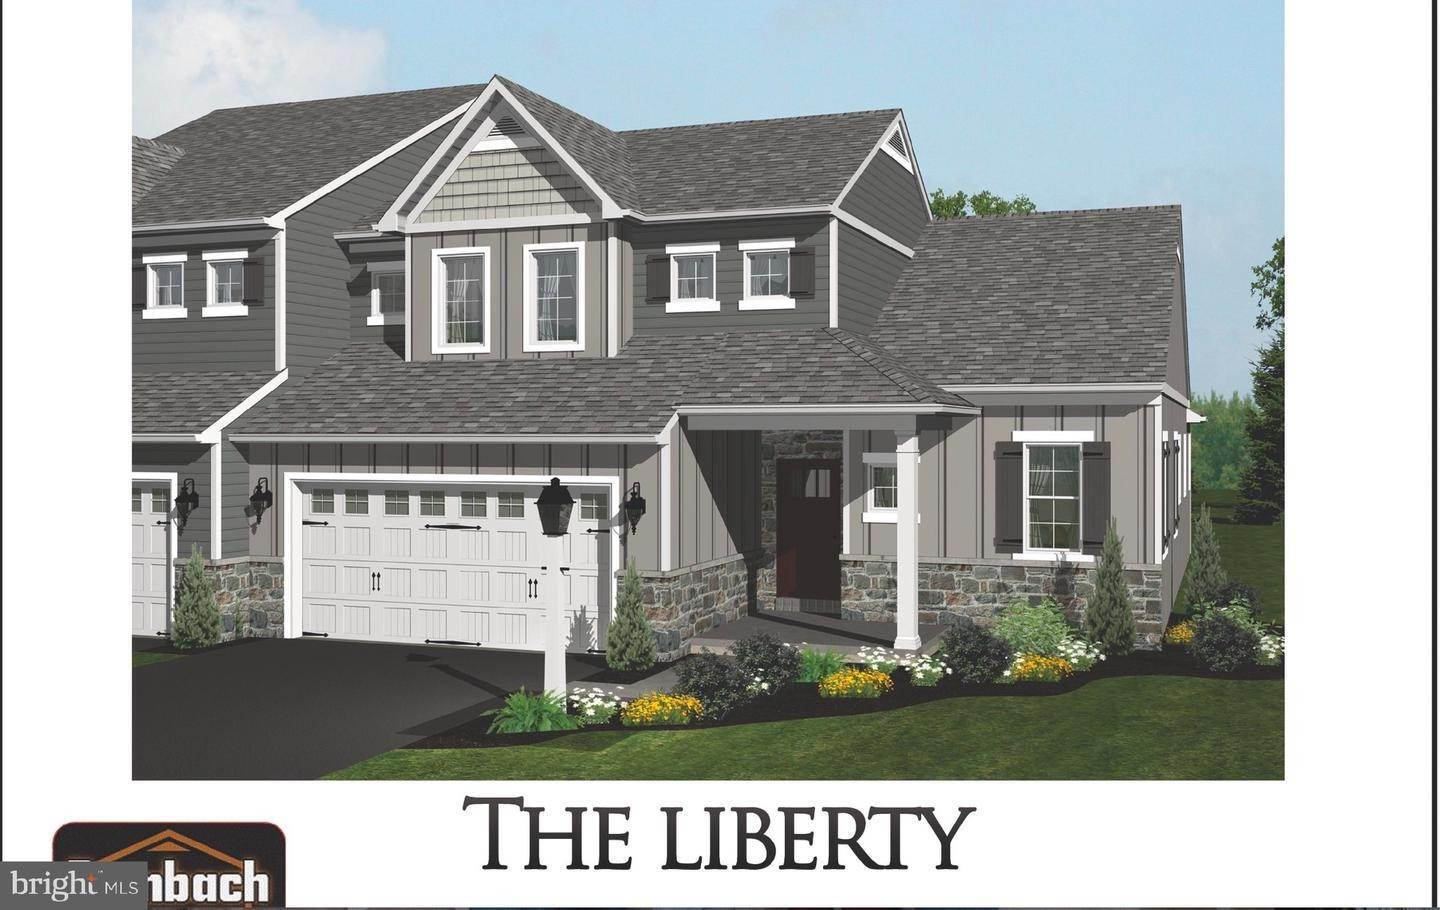 Residential for Sale at 715 RADIO ROAD, LOT 9 Elizabethtown, Pennsylvania 17022 United States